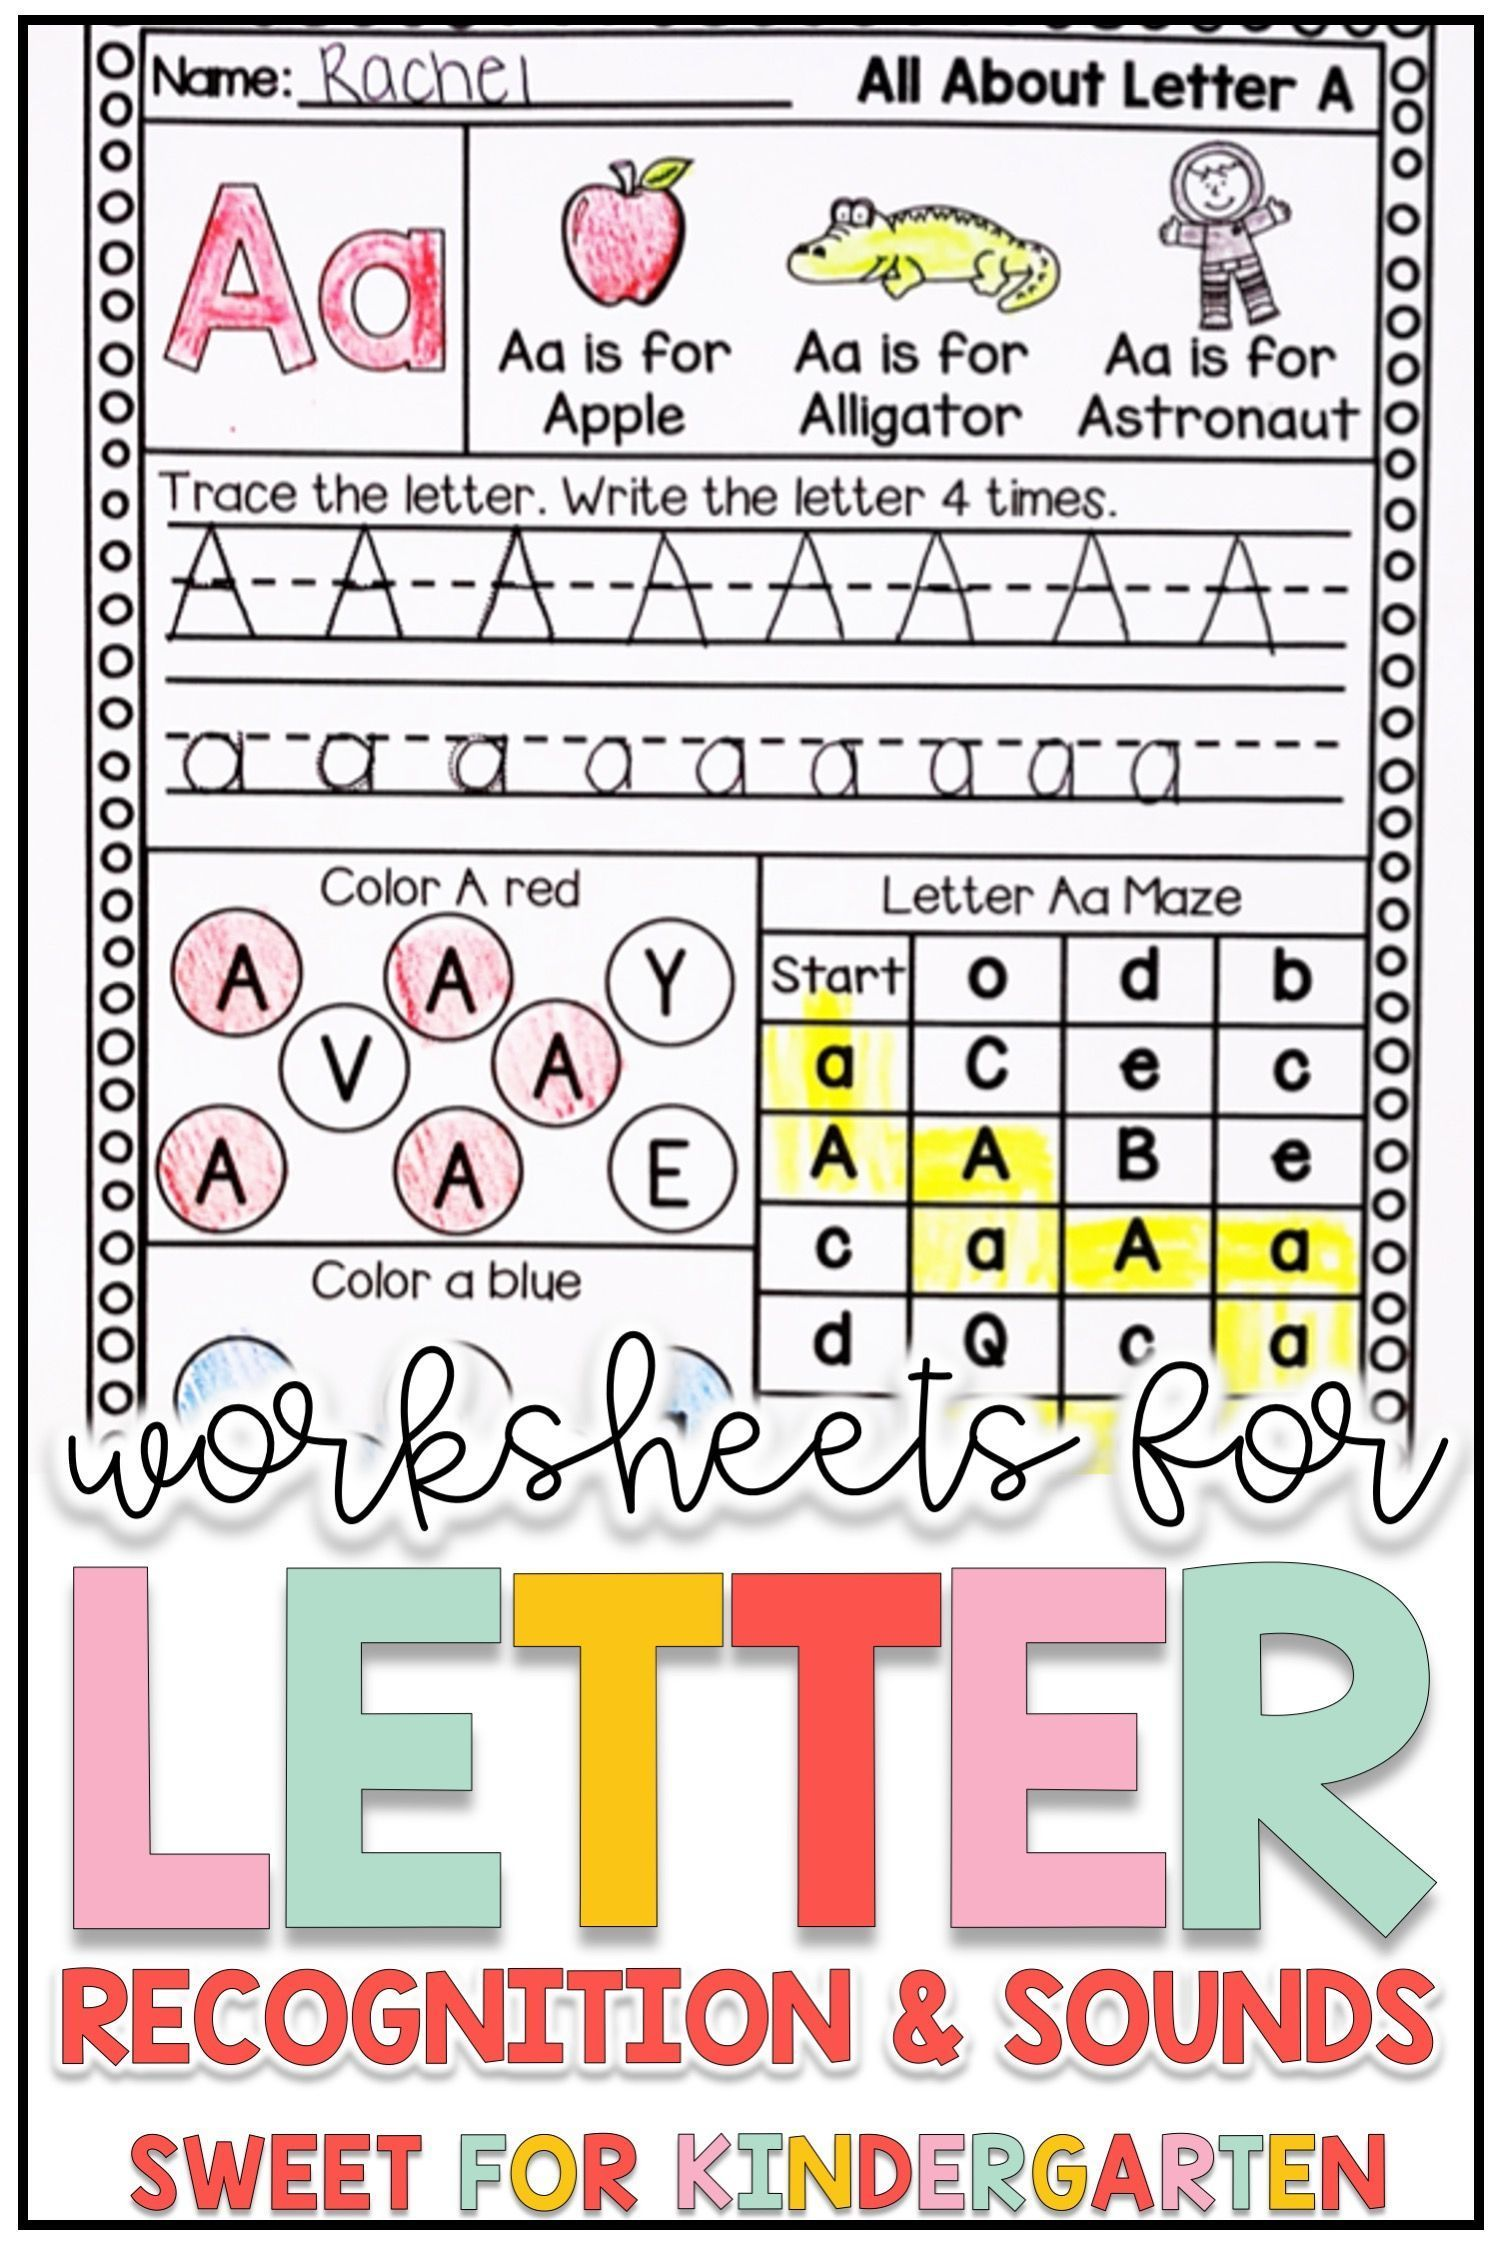 Letter Recognition And Sounds Worksheets Distance Learning Kindergarten Phonics Curriculum Letter Recognition Alphabet Recognition [ 2249 x 1499 Pixel ]